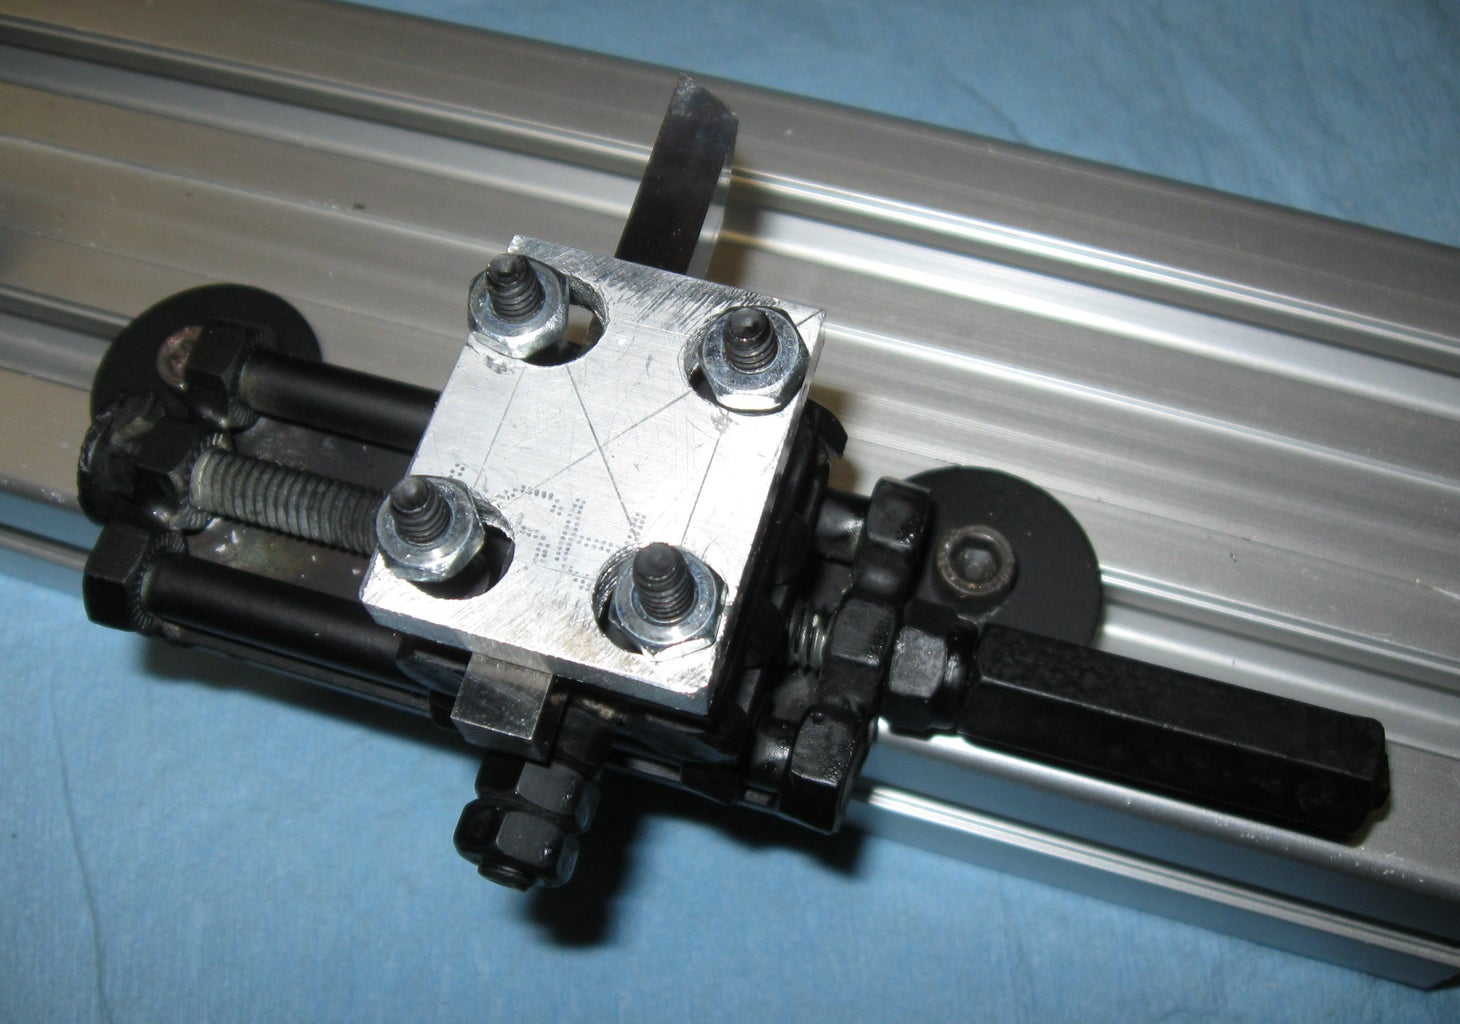 Build a 2 Axis Tool Holder